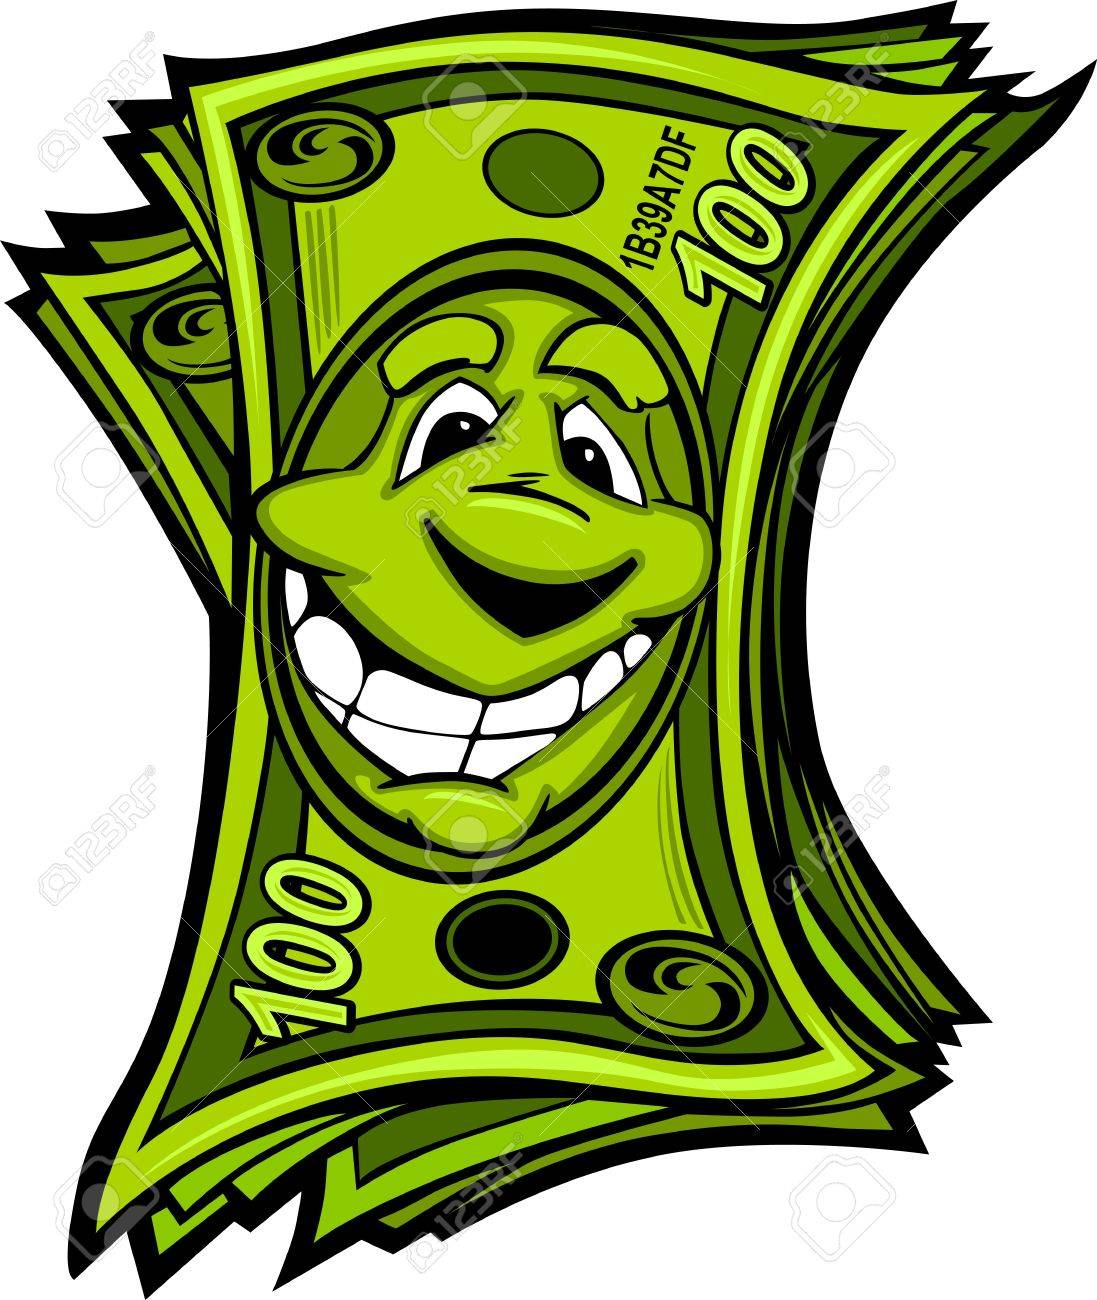 Cartoon Money Hundred Dollar Bills With Smiling Face Cartoon Image Stock Vector 14842302